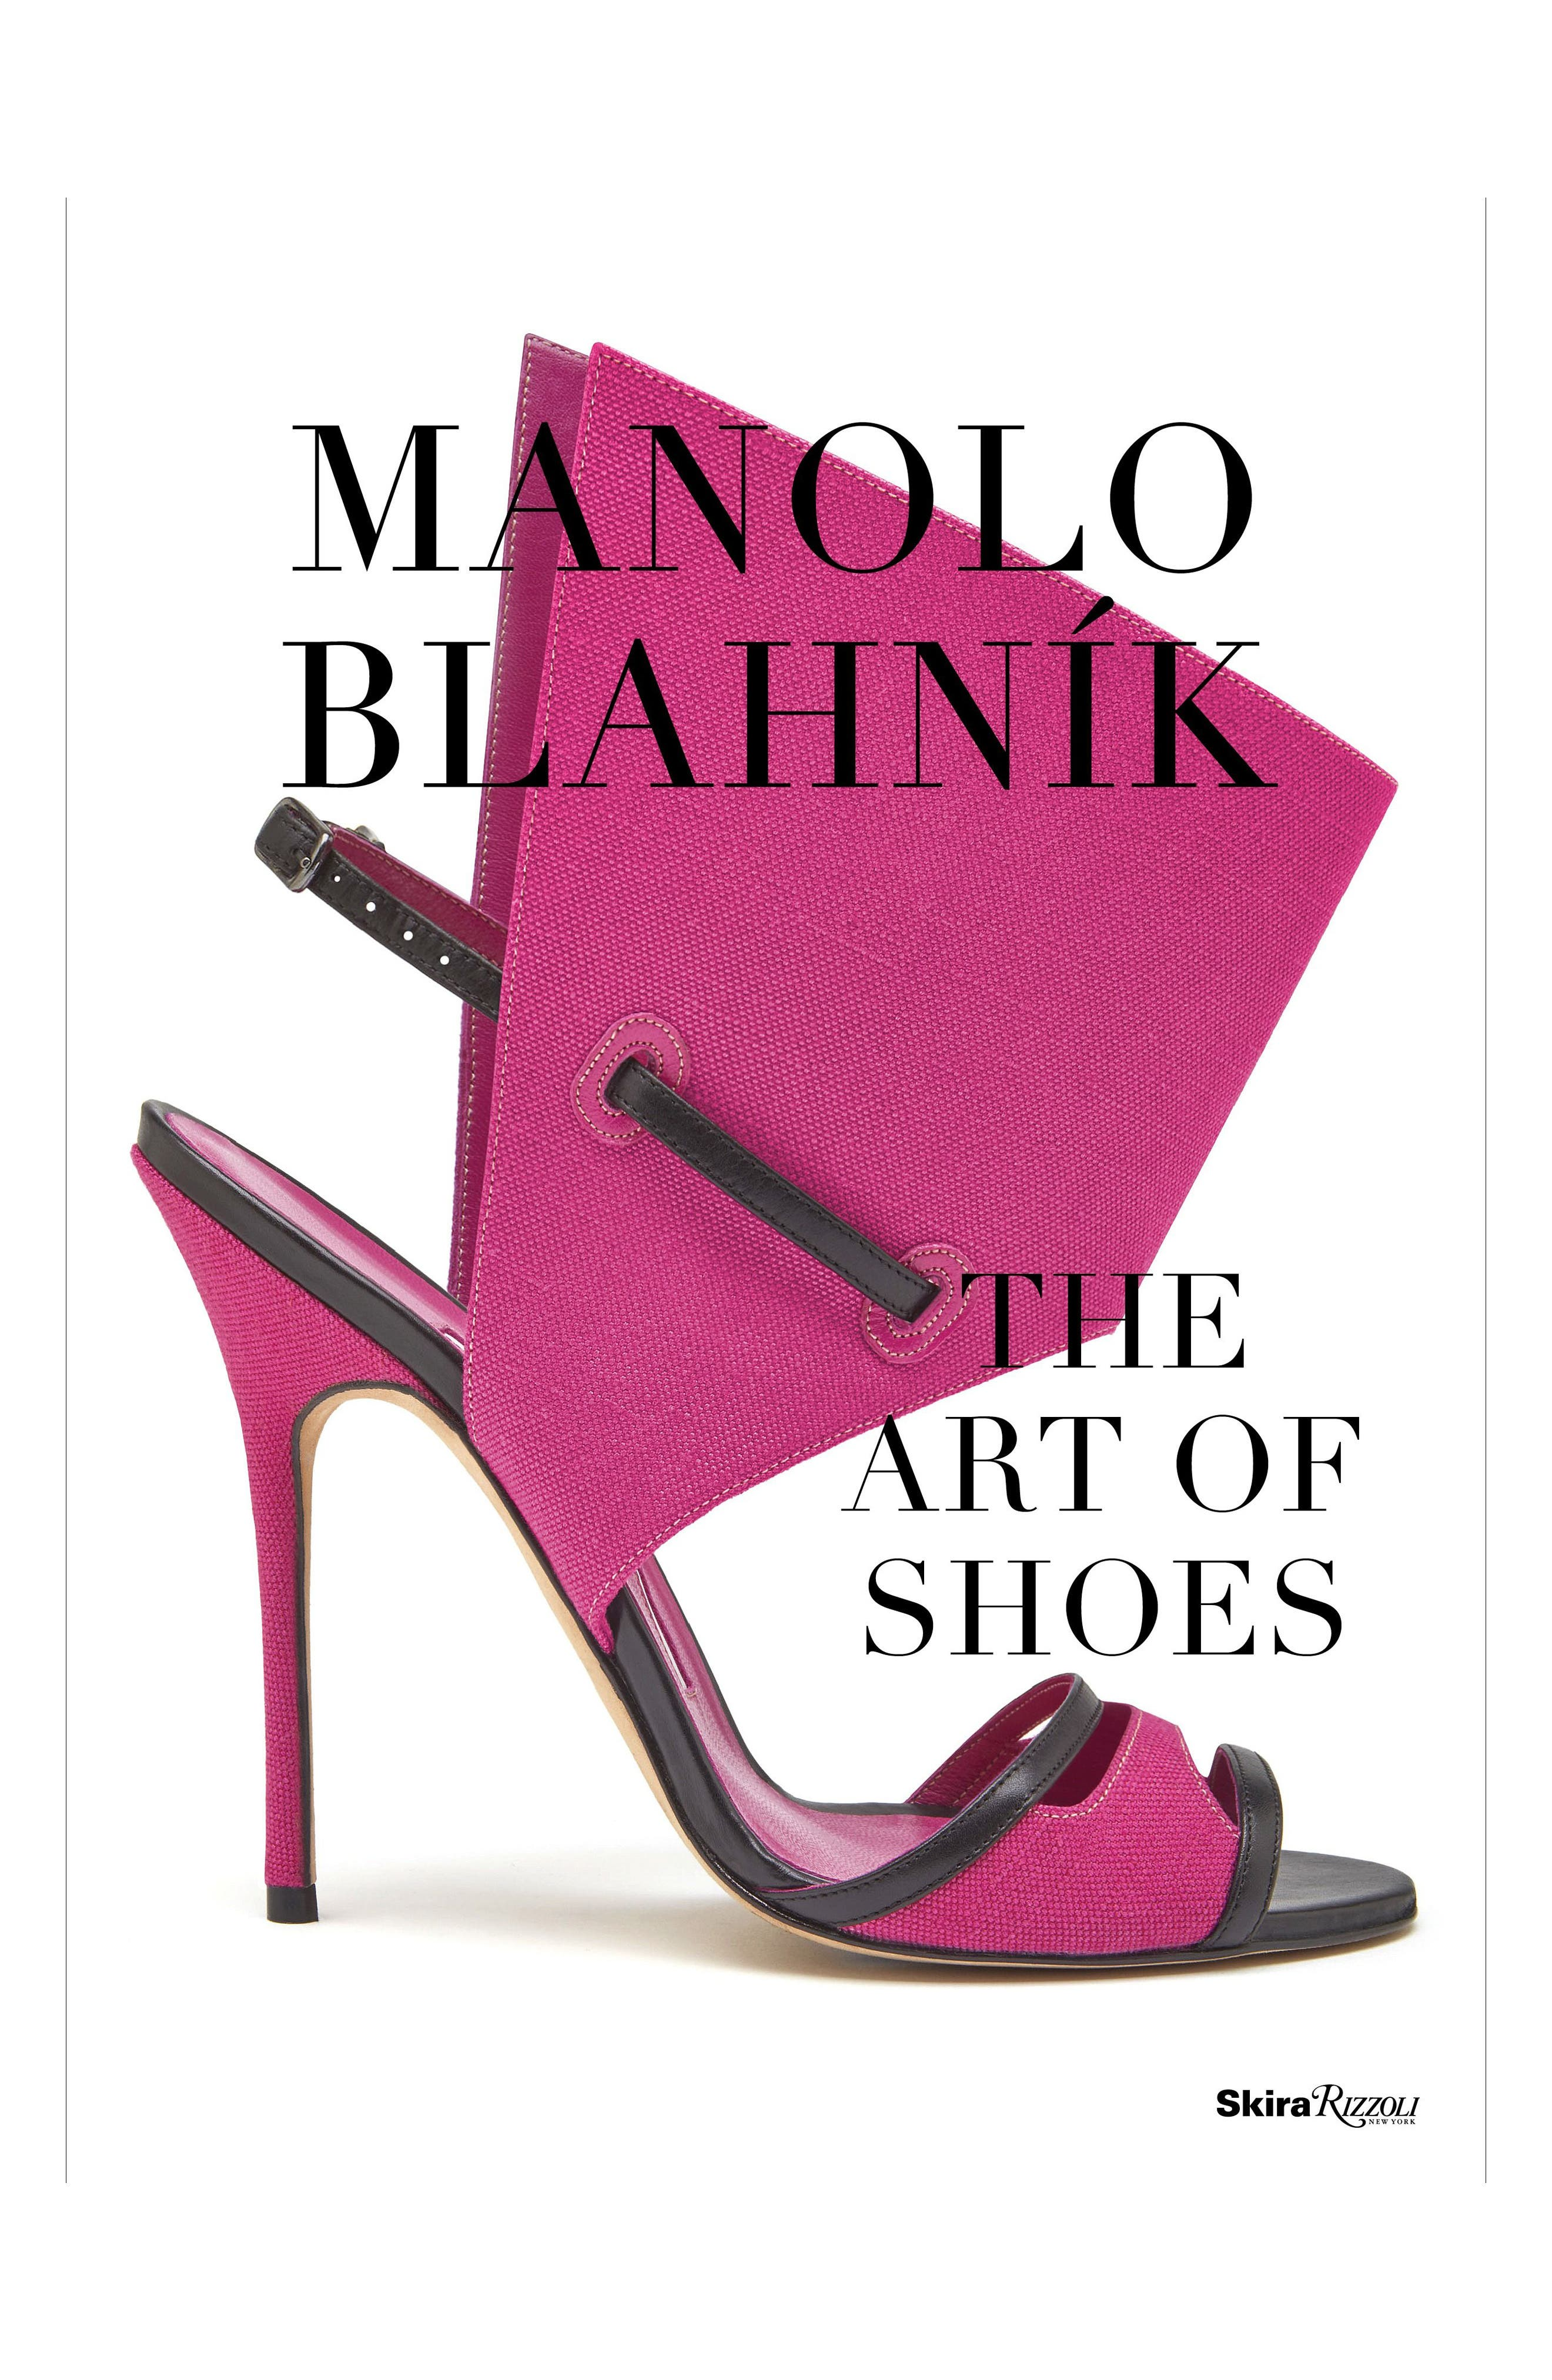 Main Image - Manolo Blahnik: The Art of Shoes Book